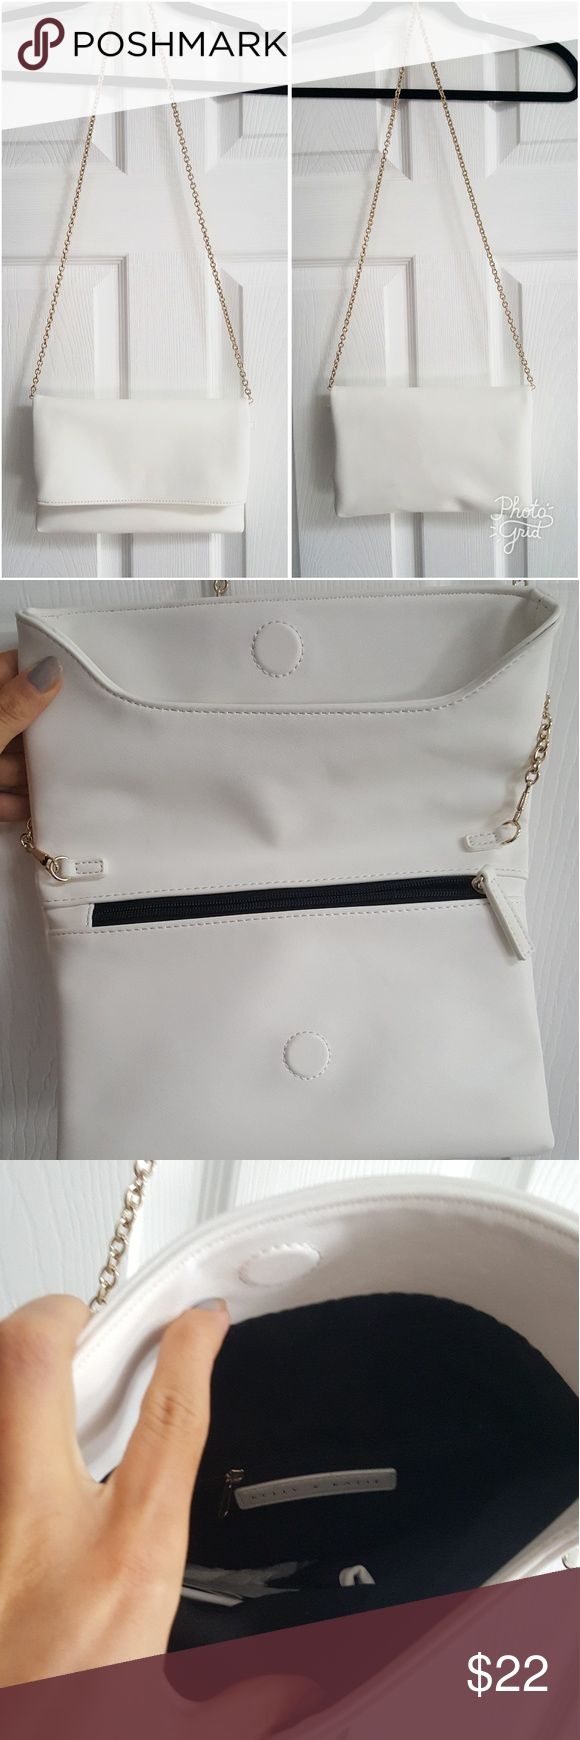 Kelly and Katie White and Gold Shoulder  Bag This bag is white with a gold removable chain allowing it to convert in to a clutch. The main compartment of the bag folds and shuts with a magnet. There are also a few zipper compartments, one of which is shown when you lift the bag to open it. Only used once, perfect condition. Kelly & Katie Bags Shoulder Bags